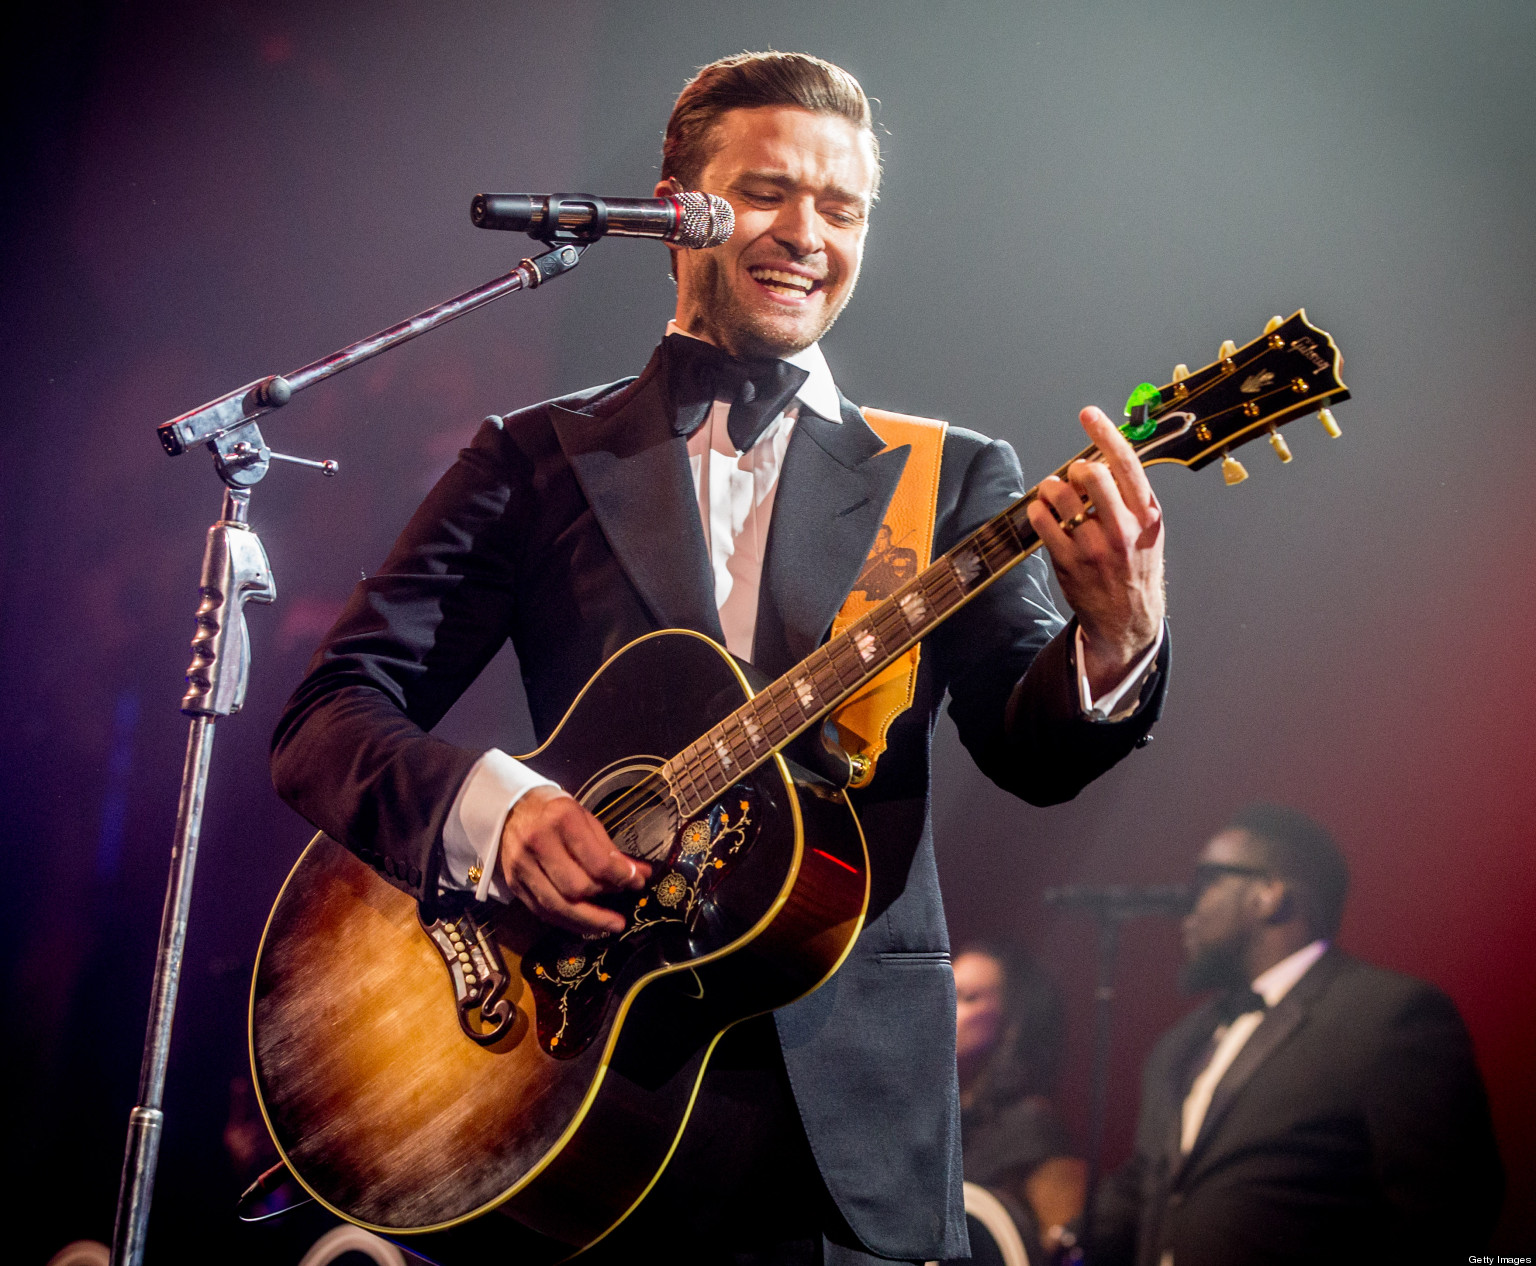 a biography of justin timberlake a singer Biography of the handsome sexy back singer justin timberlake and his family.